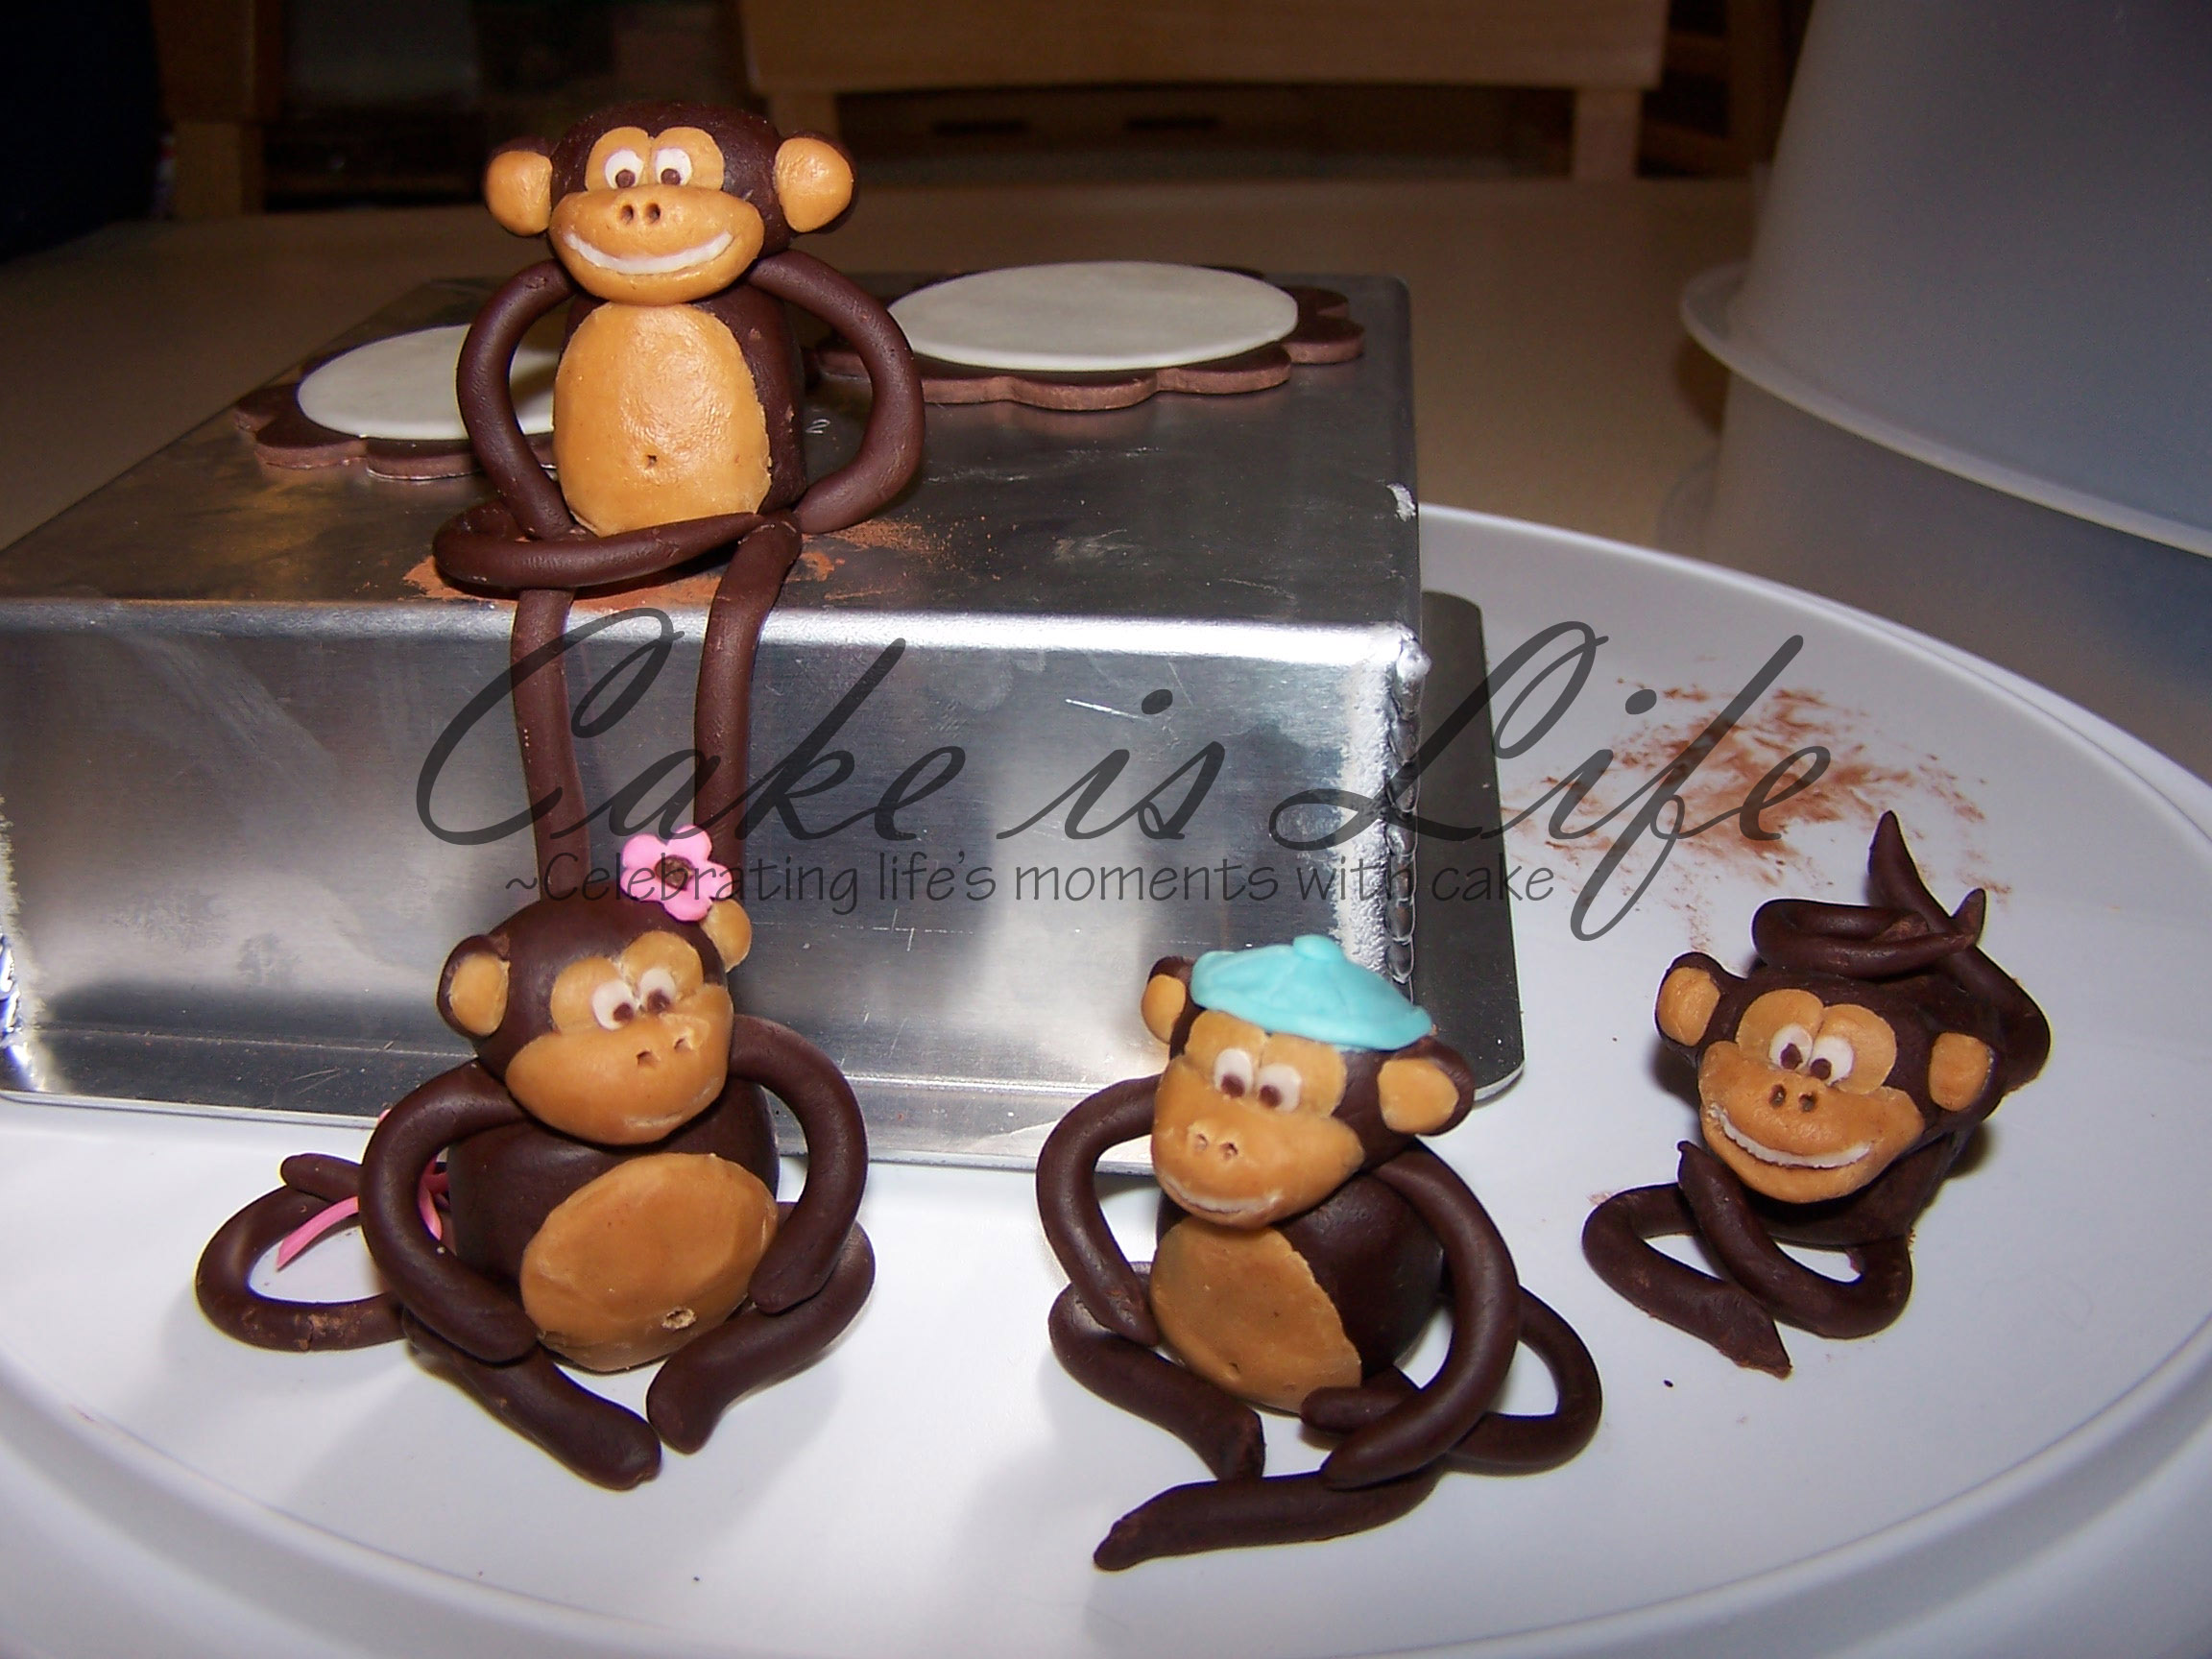 Modeling Chocolate Monkeys | Cake Is Life